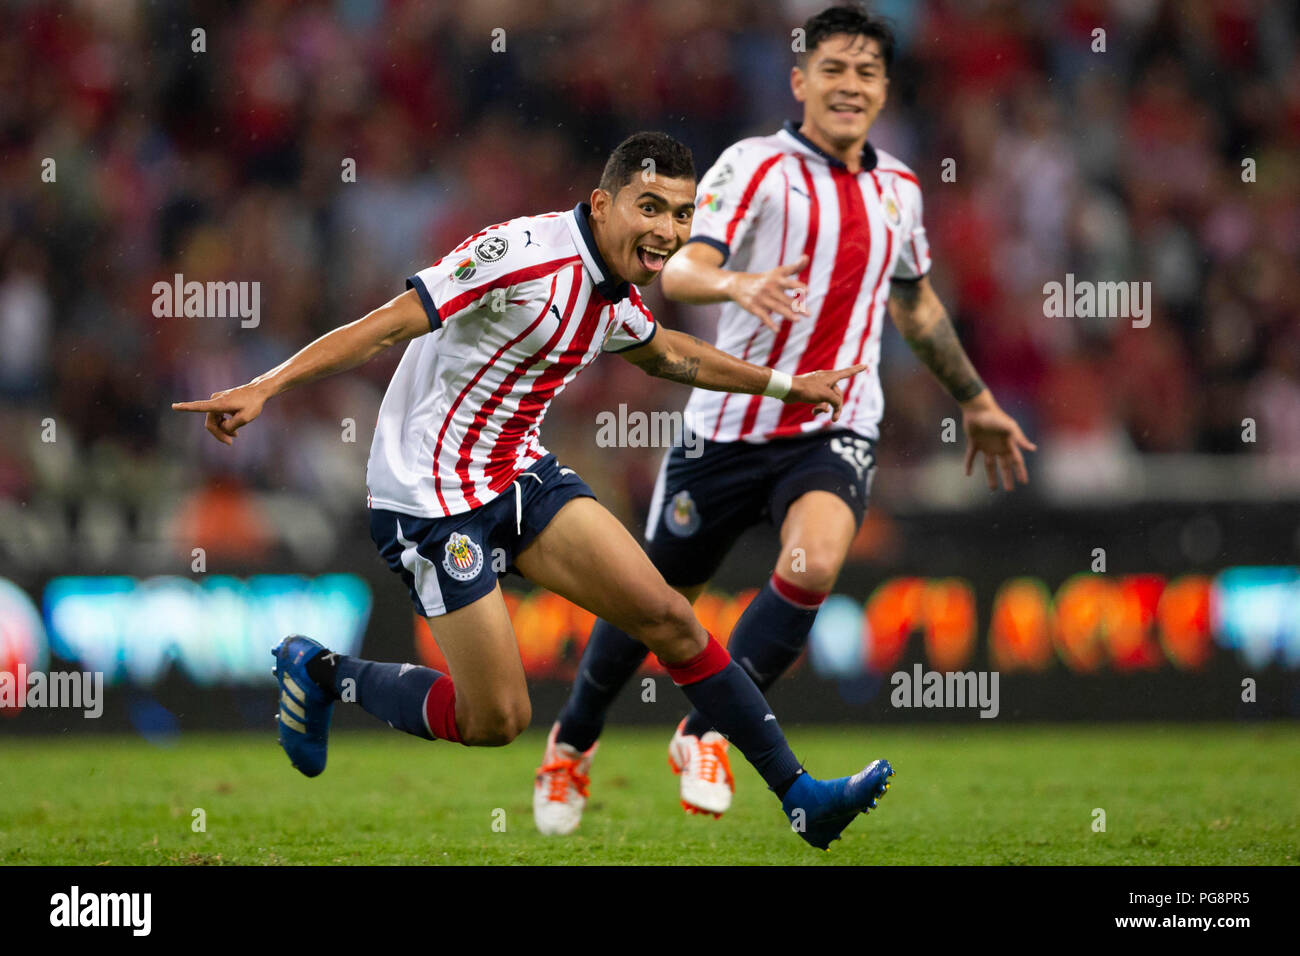 2ea872f7bed Chivas' Orbelin Pineda (L) celebrates after scoring a goal during a match  between